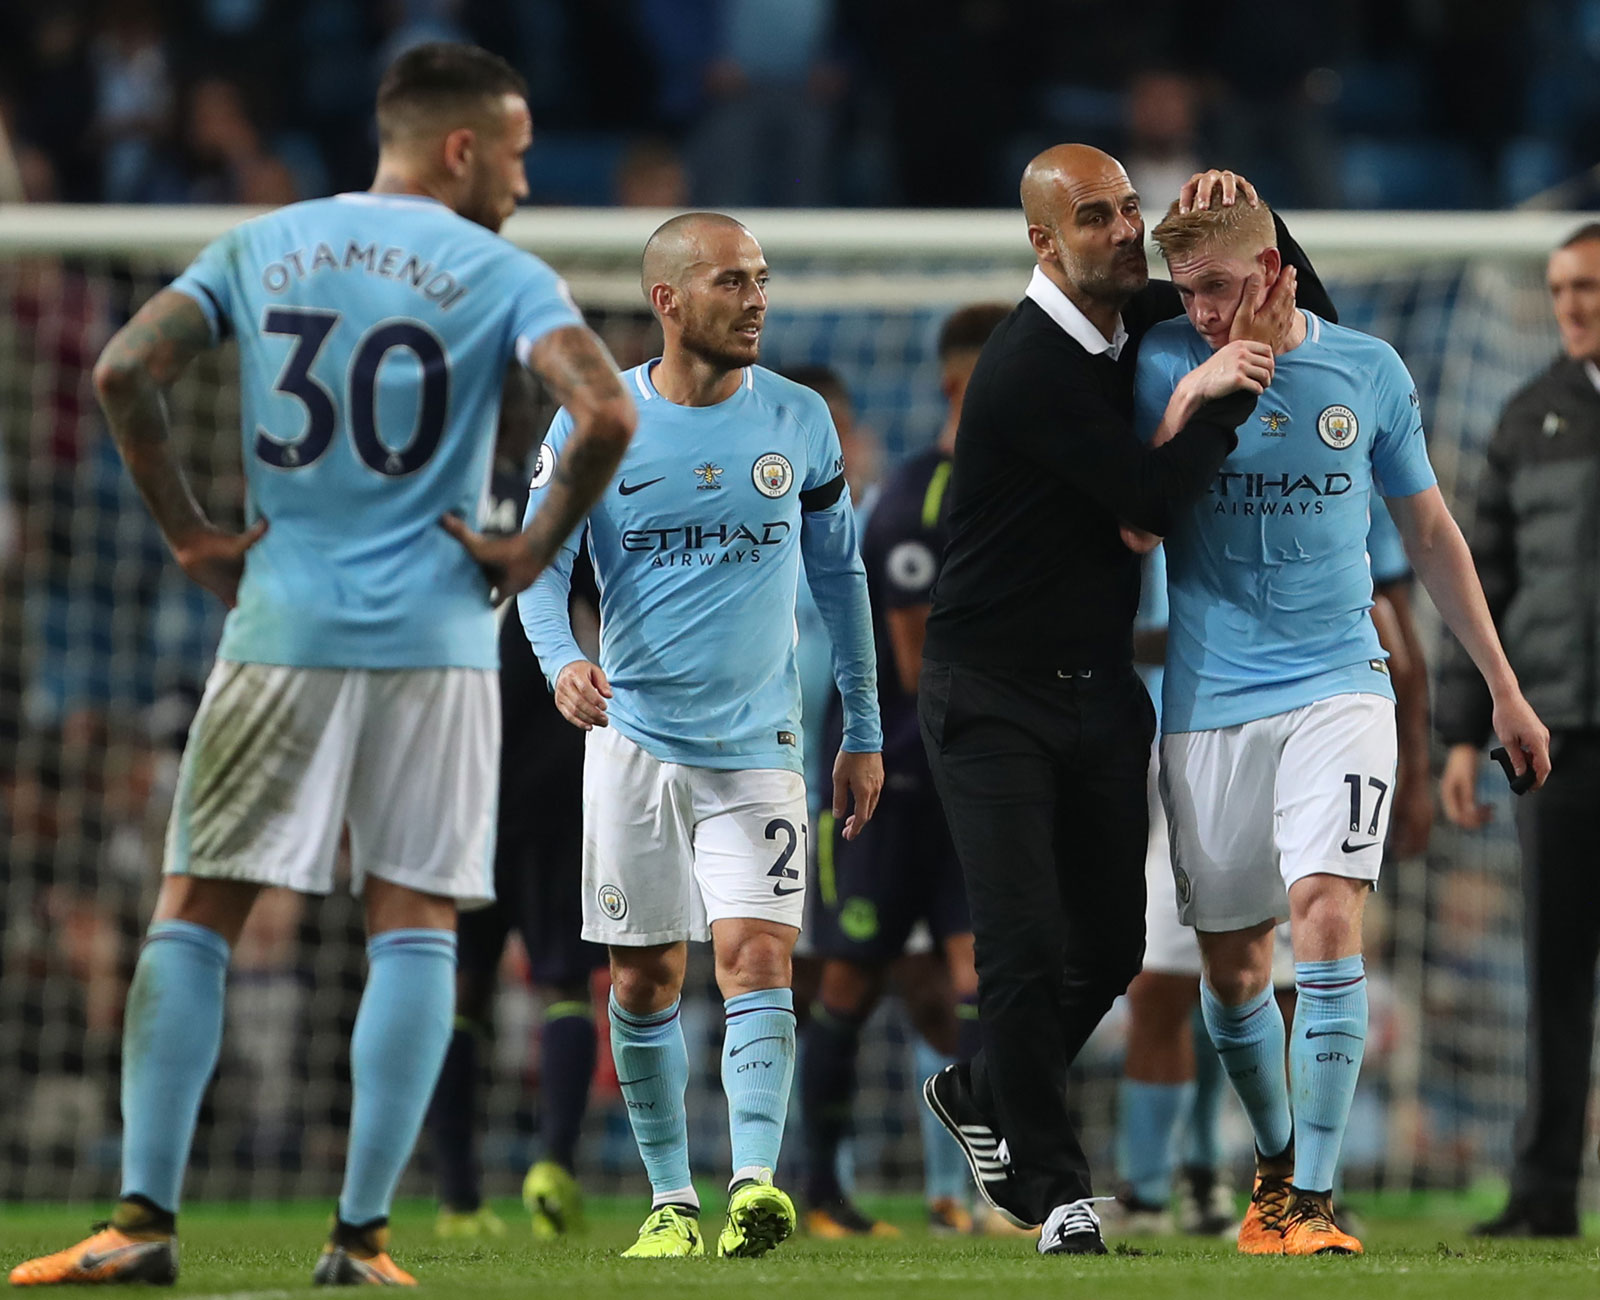 Can rampant Man City make Premier League history?